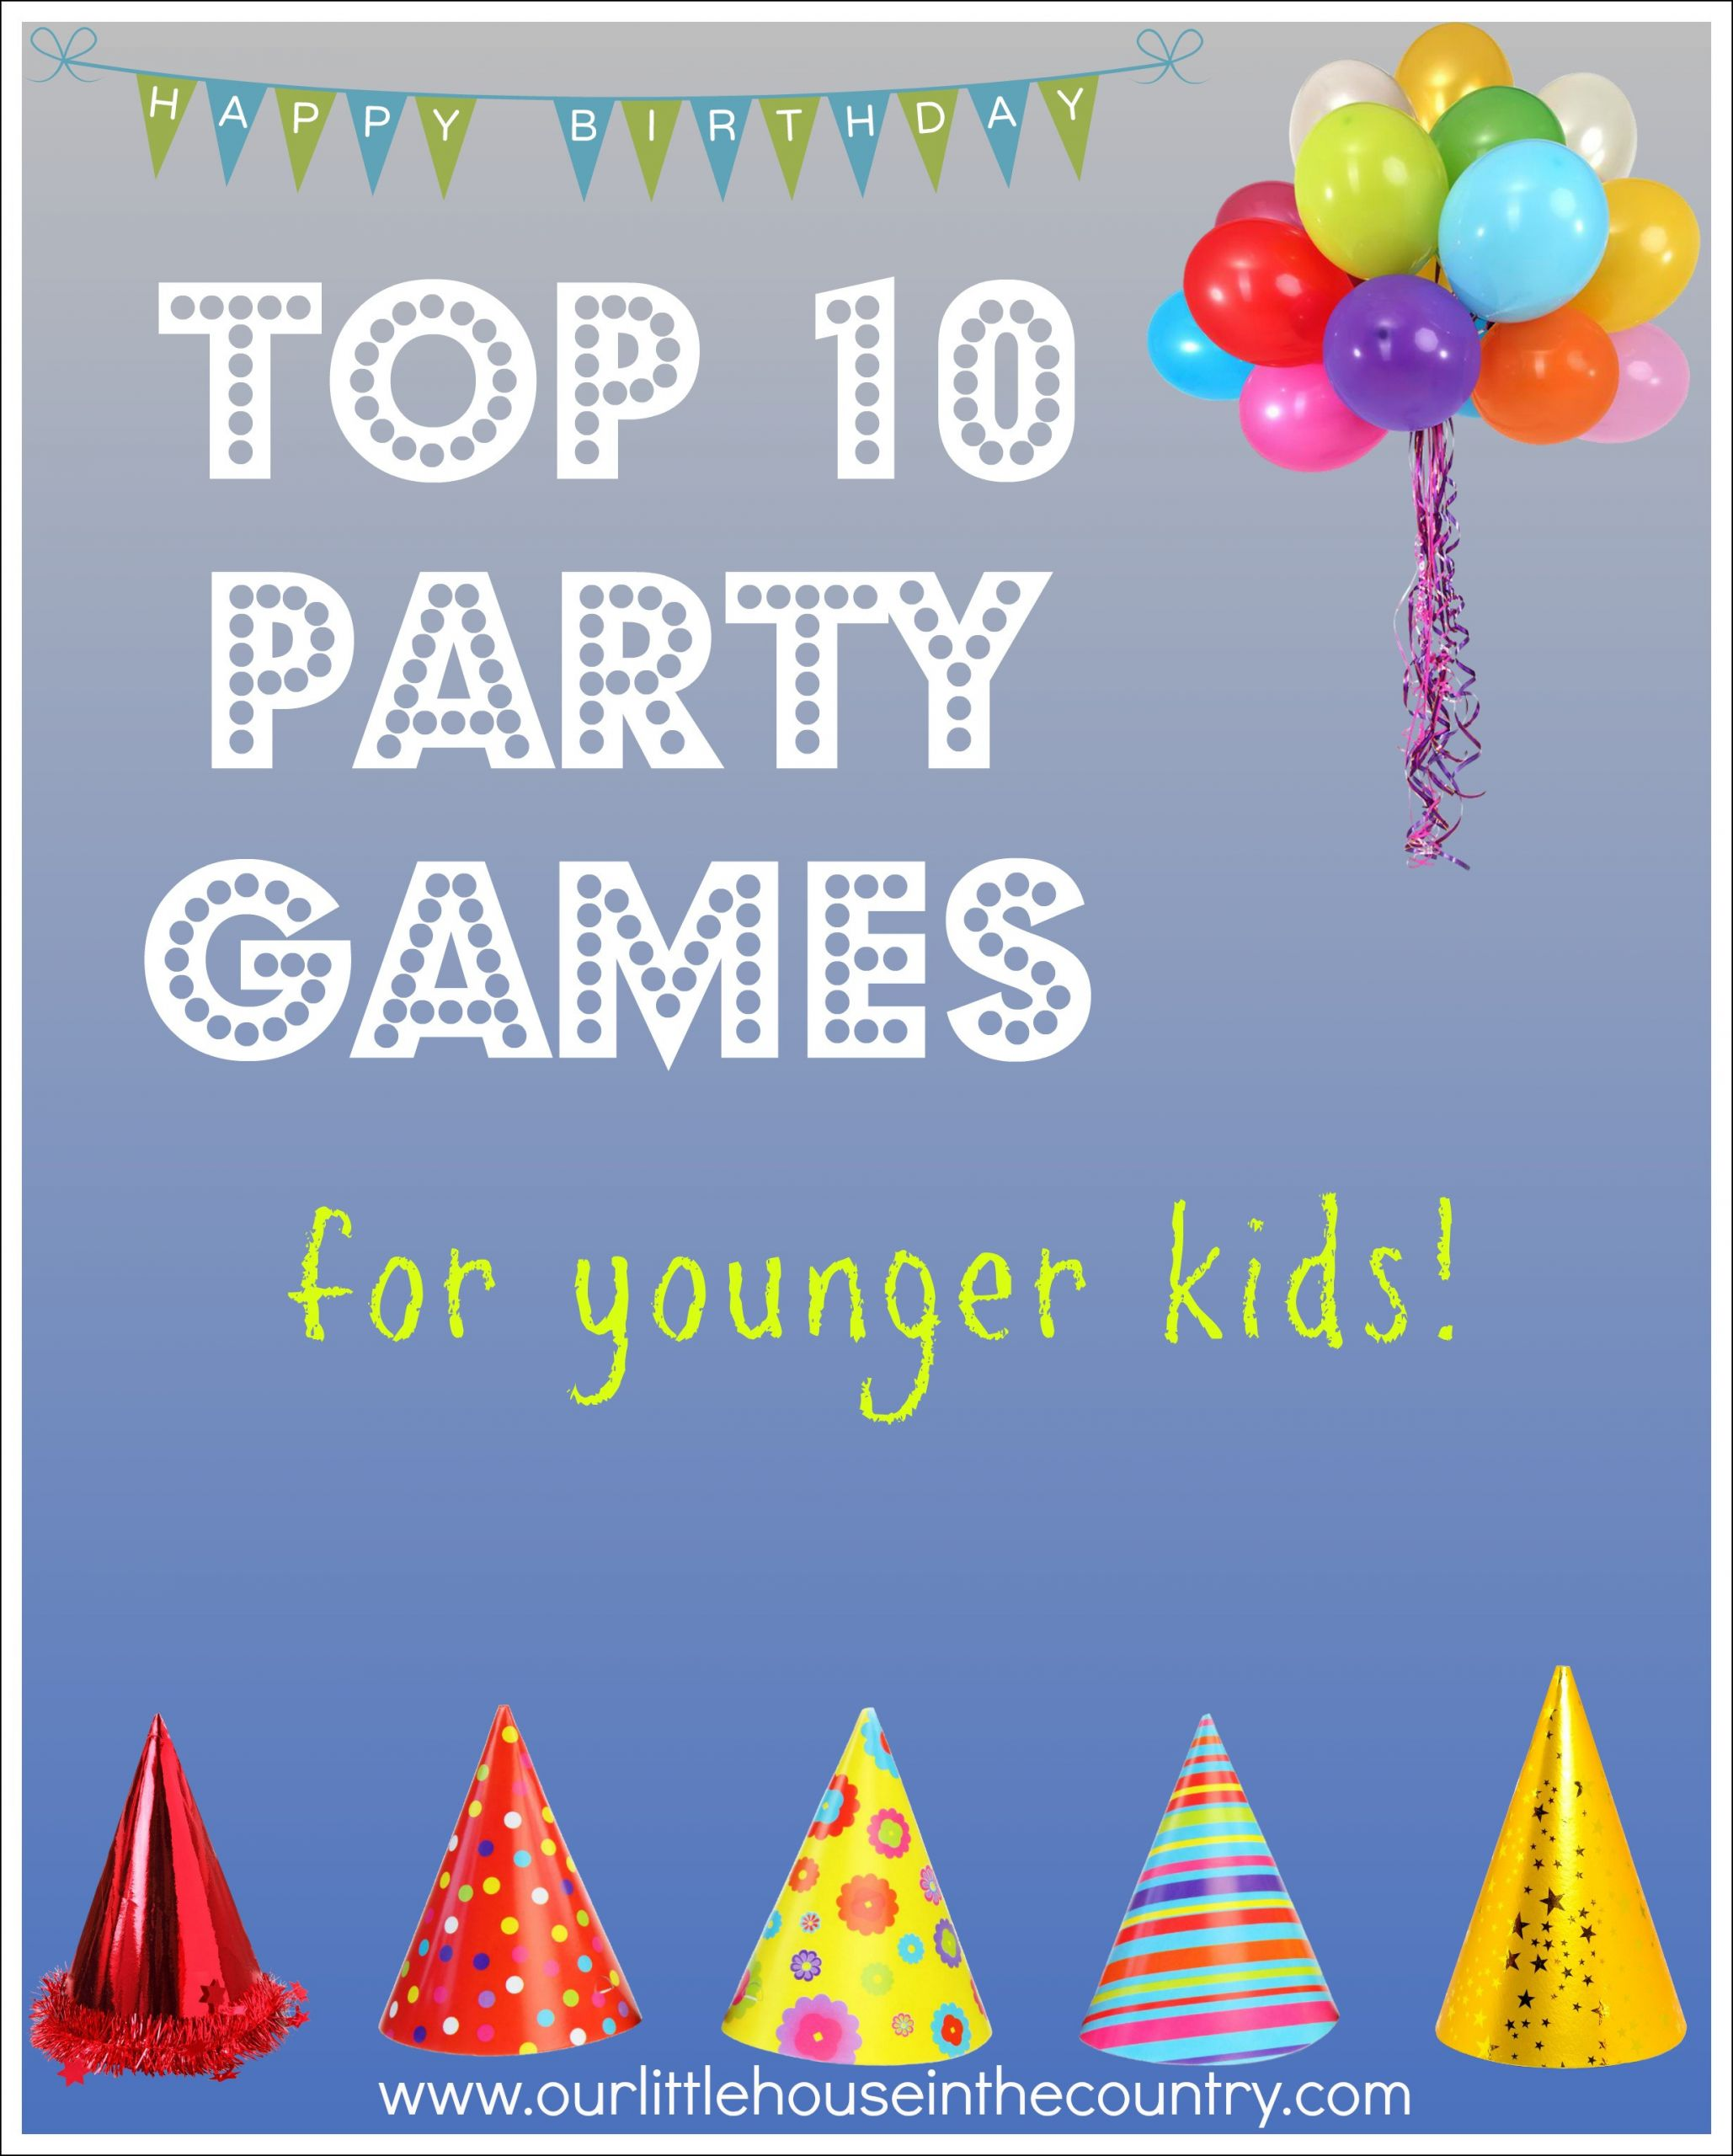 Games For Kids Bday Party  Top 10 Party Games – for younger kids